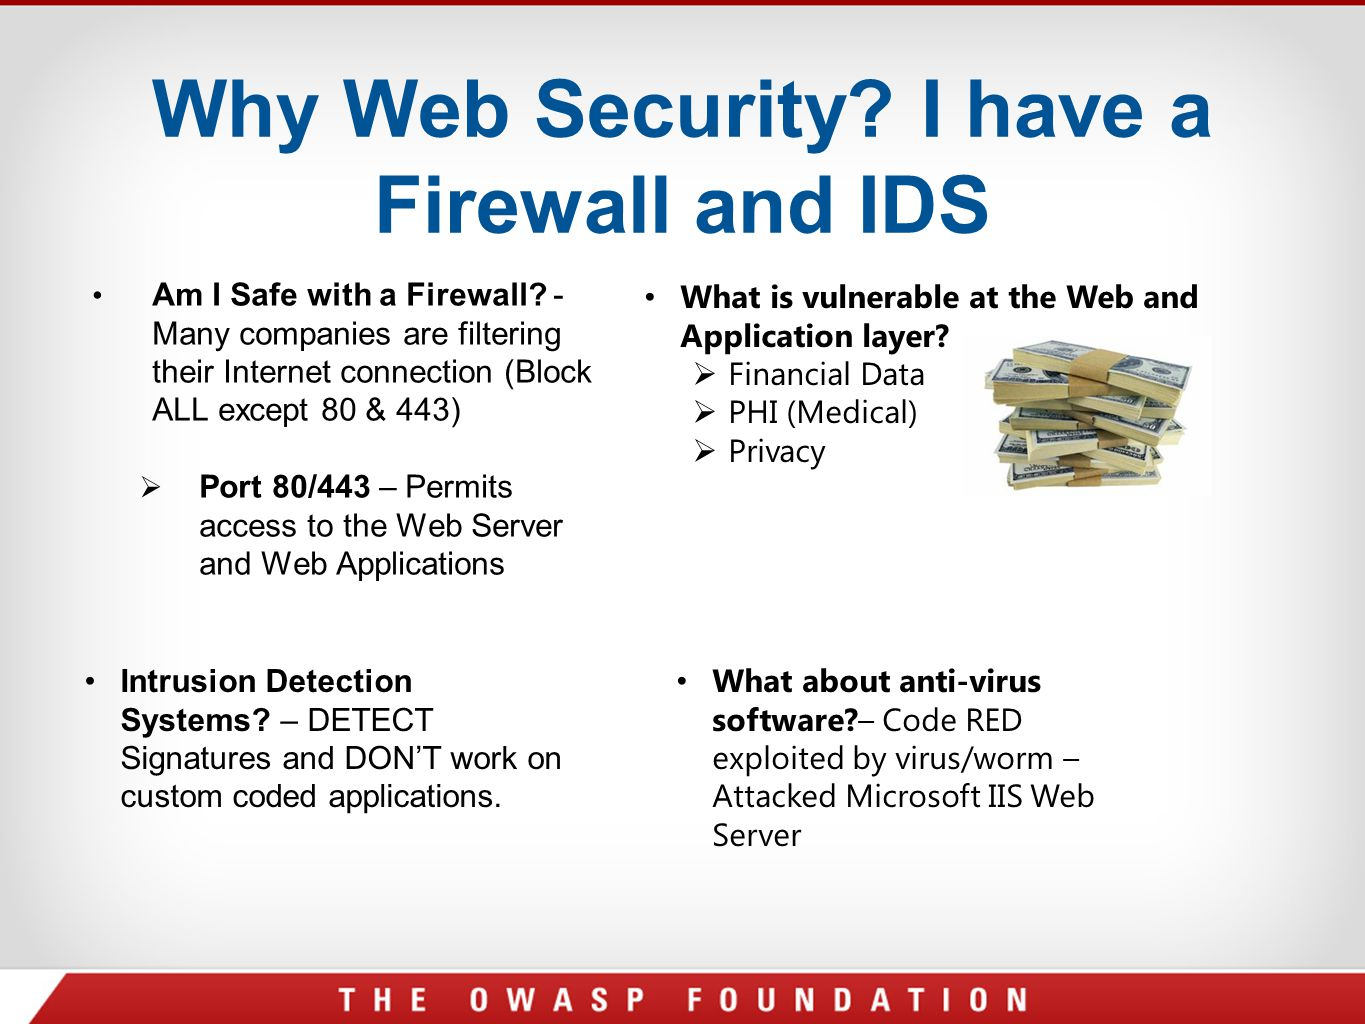 Why Web Security I have a Firewall and IDS